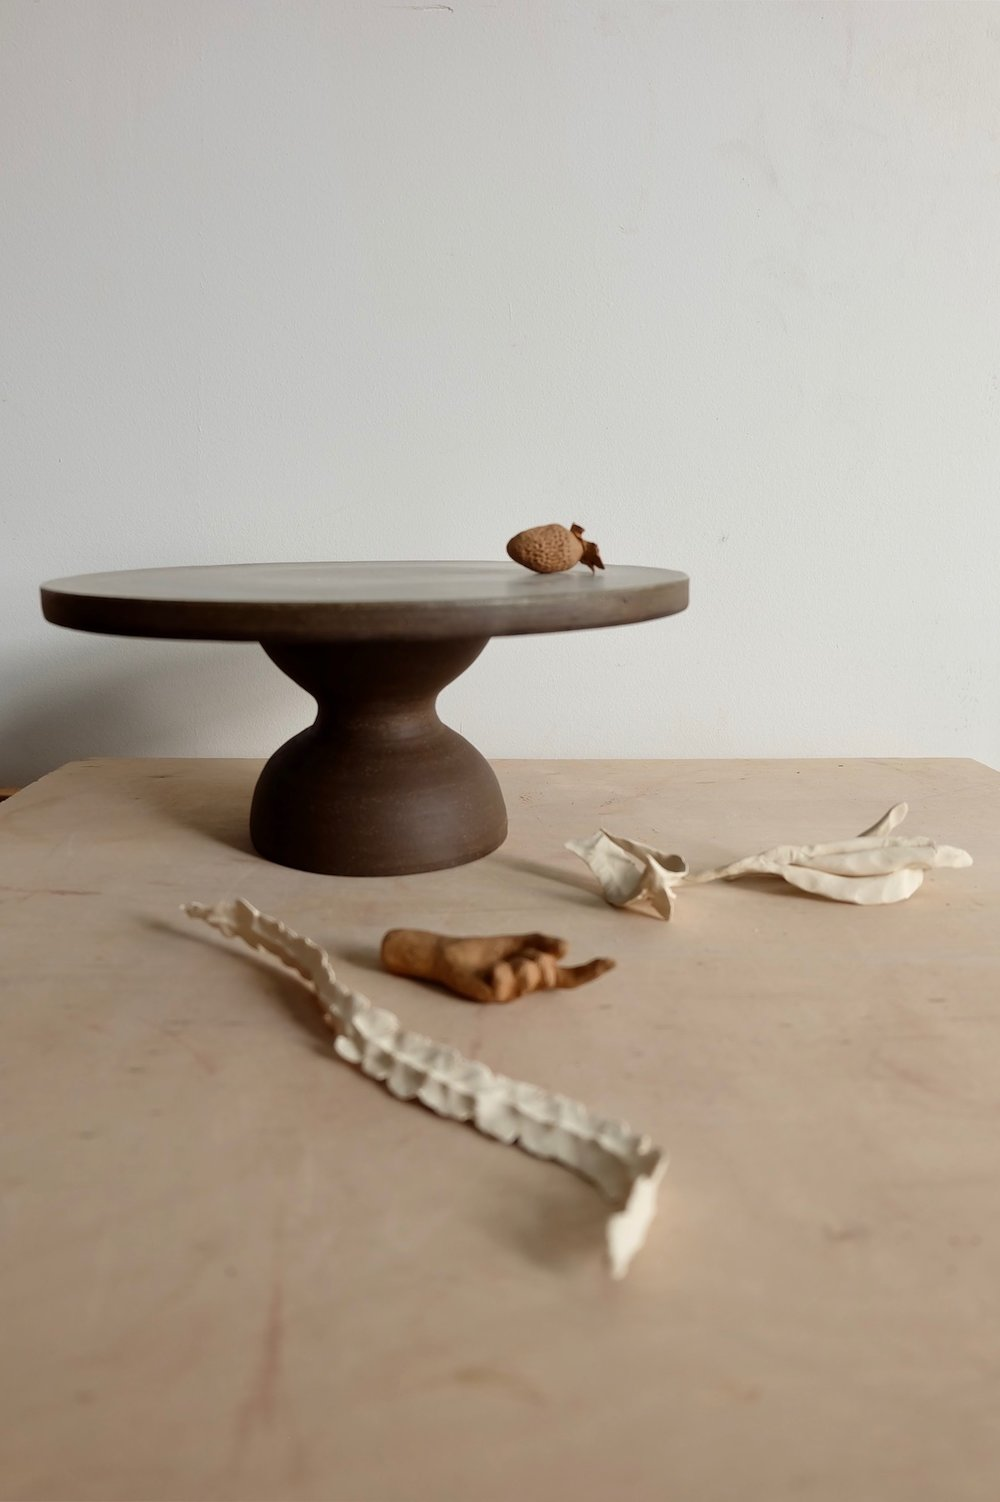 "A stand for 9"" diameter cakes and pies in an earthy finish in a friendly form. It is a wheel thrown dark chocolate clay, finished in satin grey on the top surface."